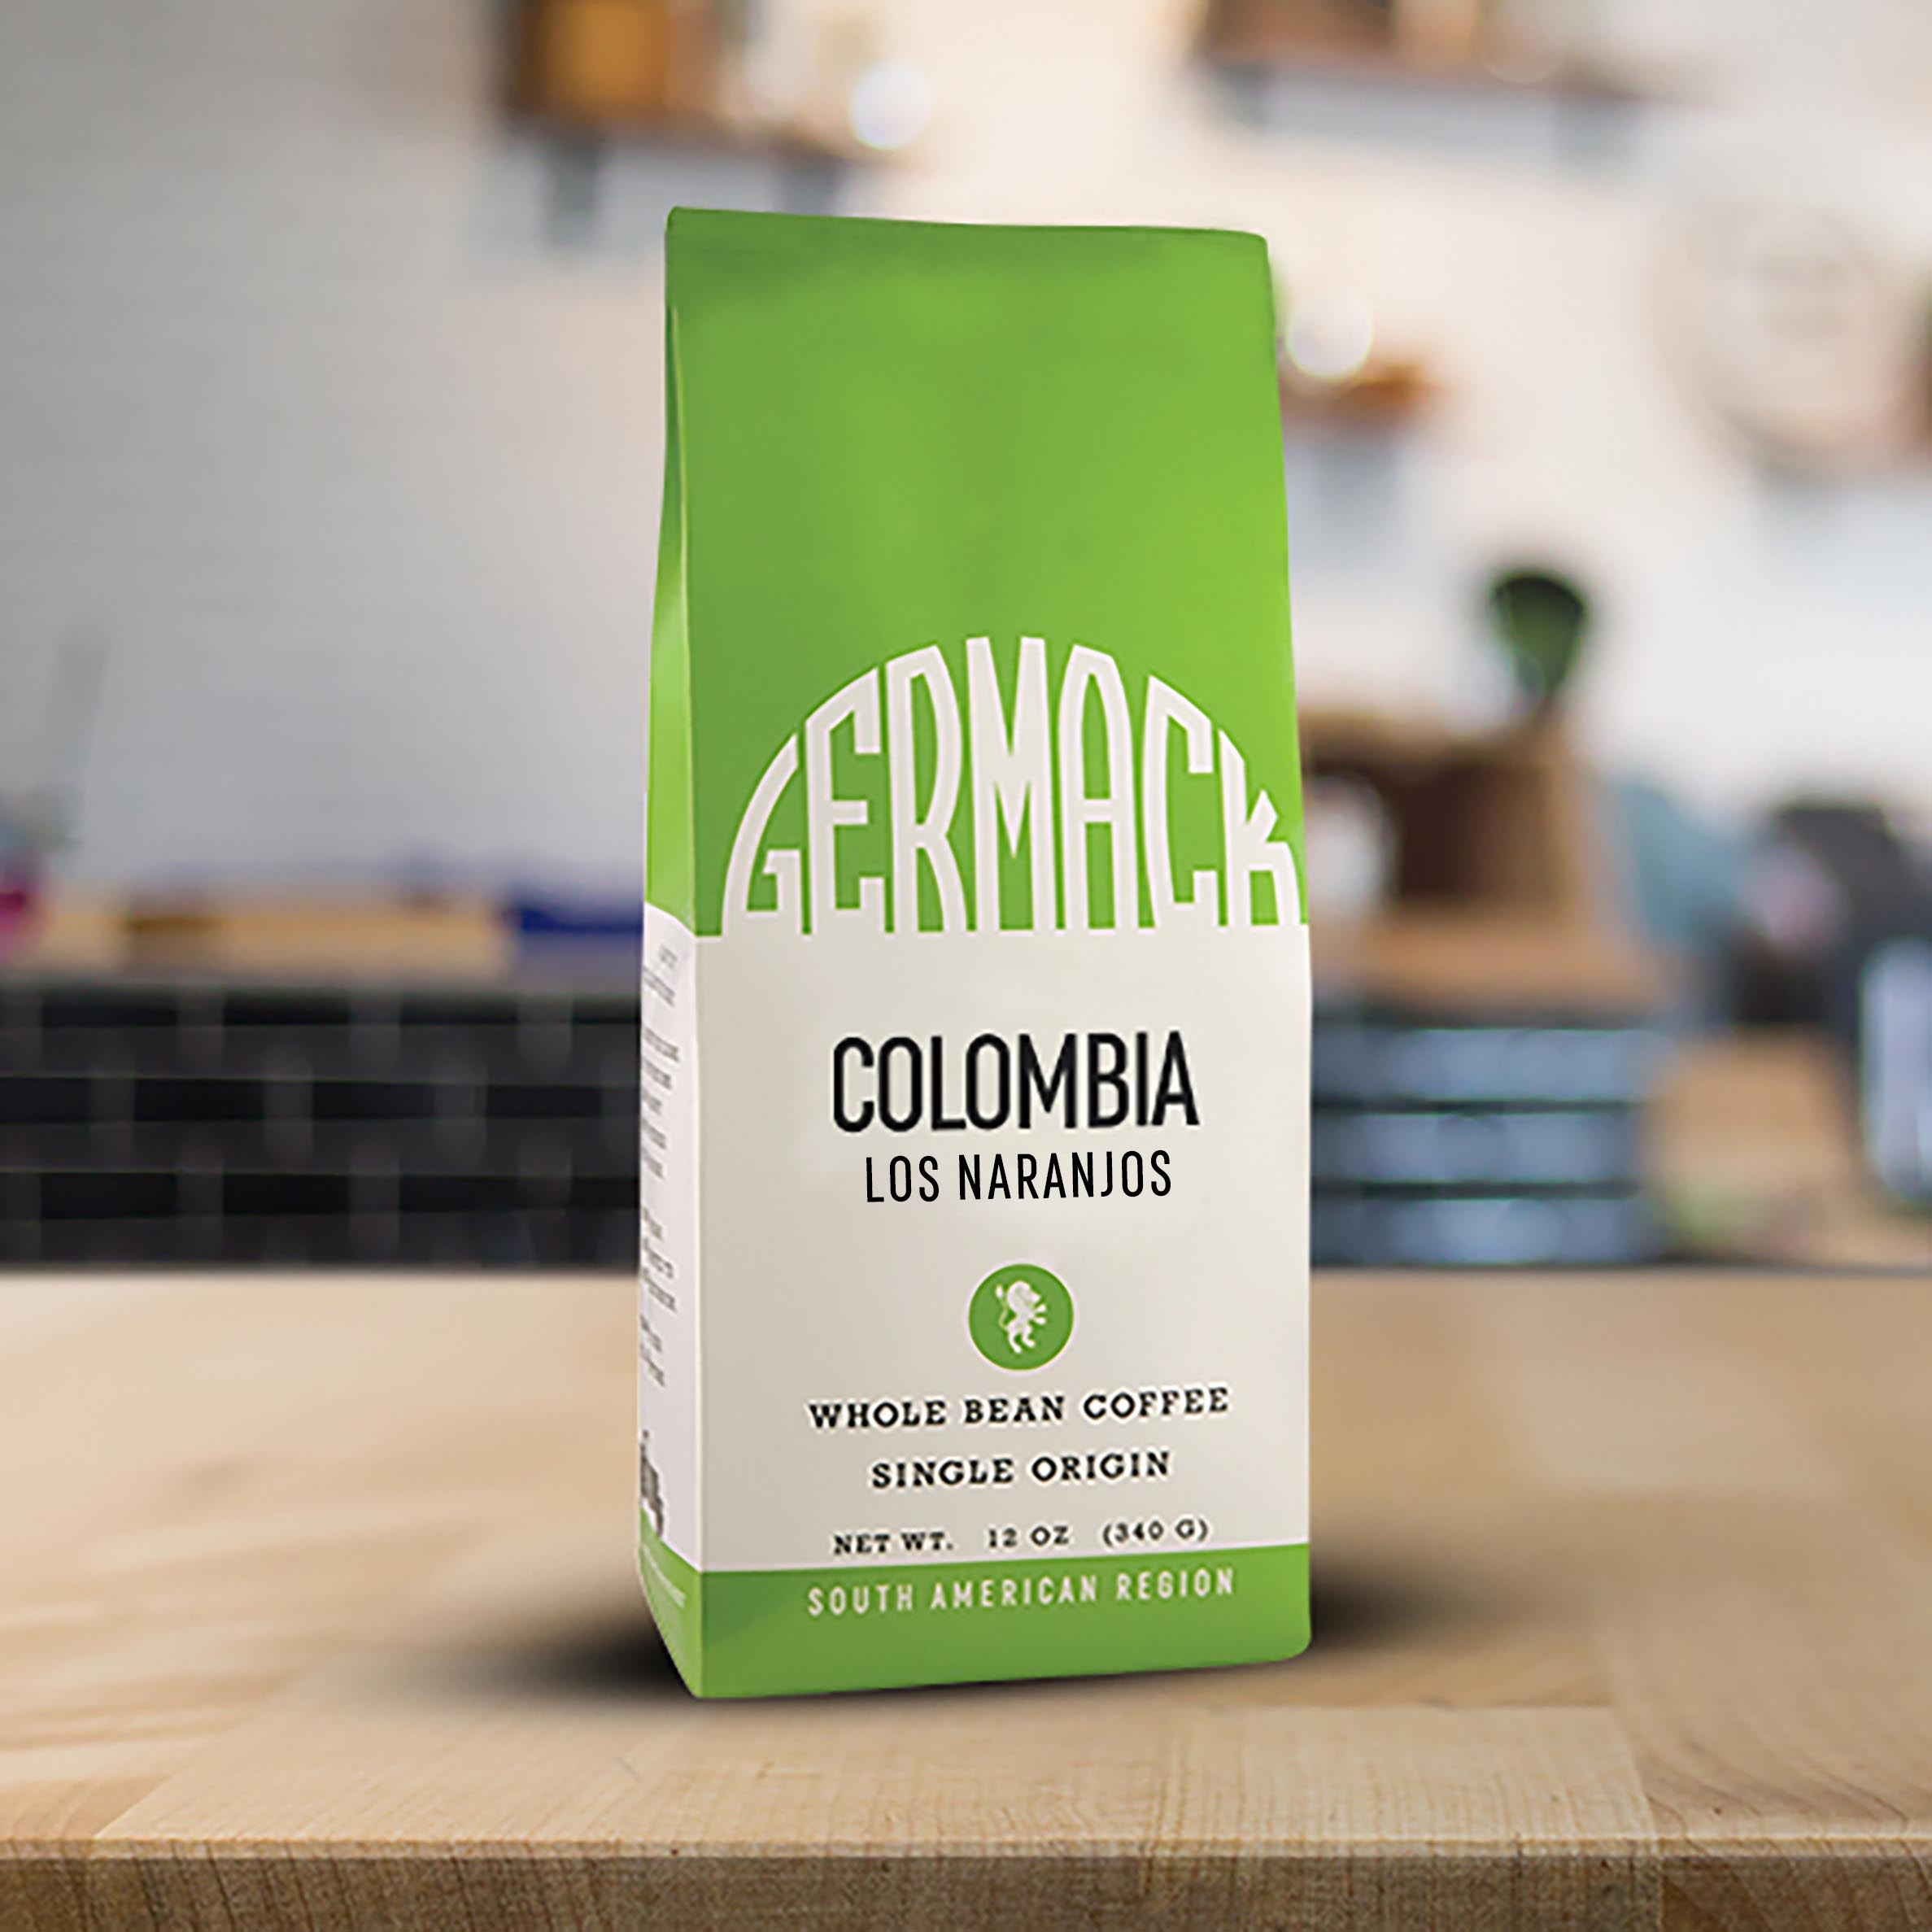 Picture Germack  Coffee Colombia Nos Naranjos - 5 lb